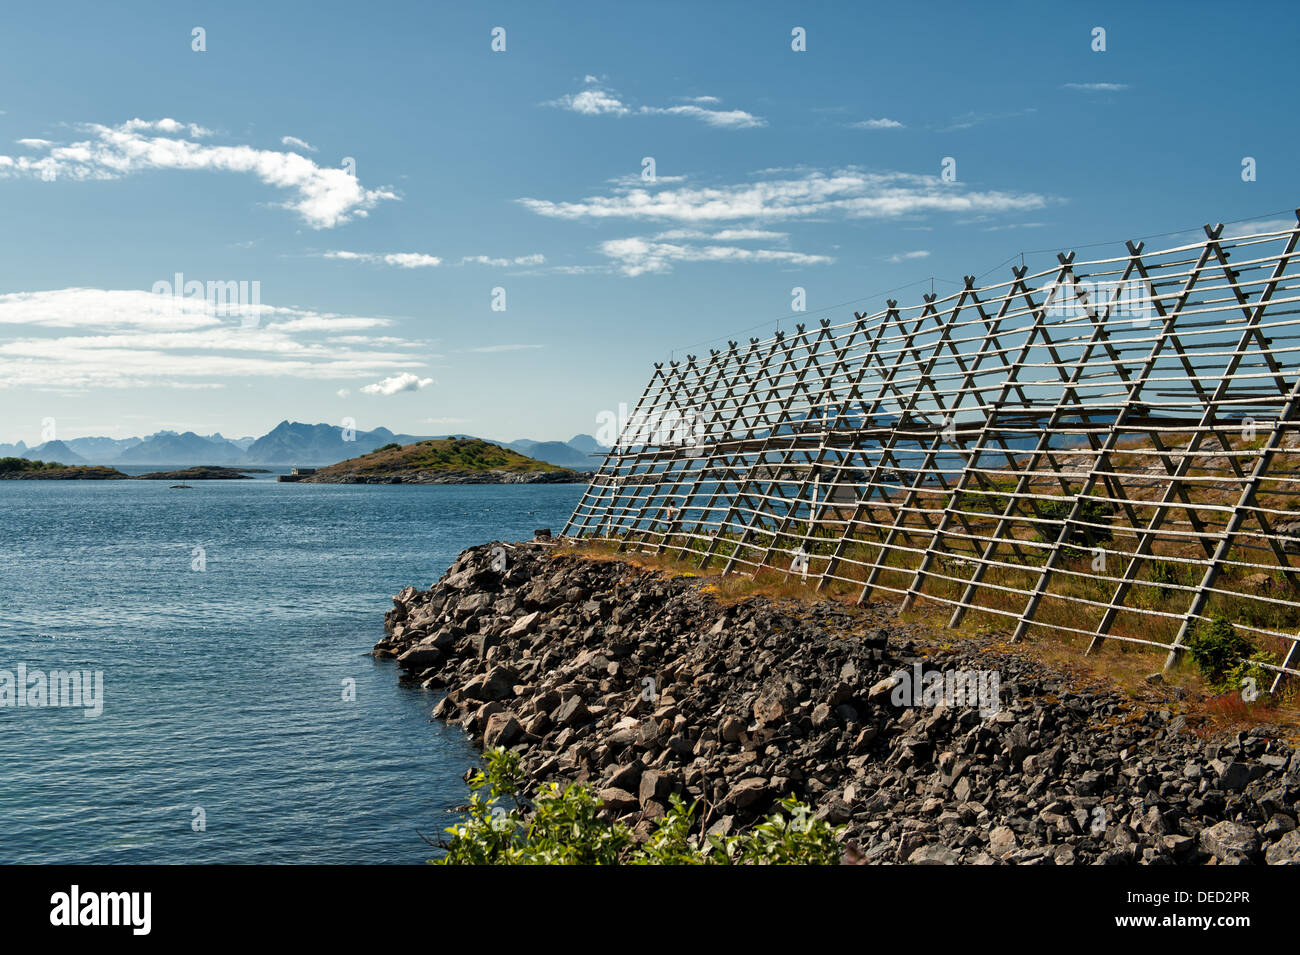 Typical drying flake for Stockfish in Lofoten - Stock Image